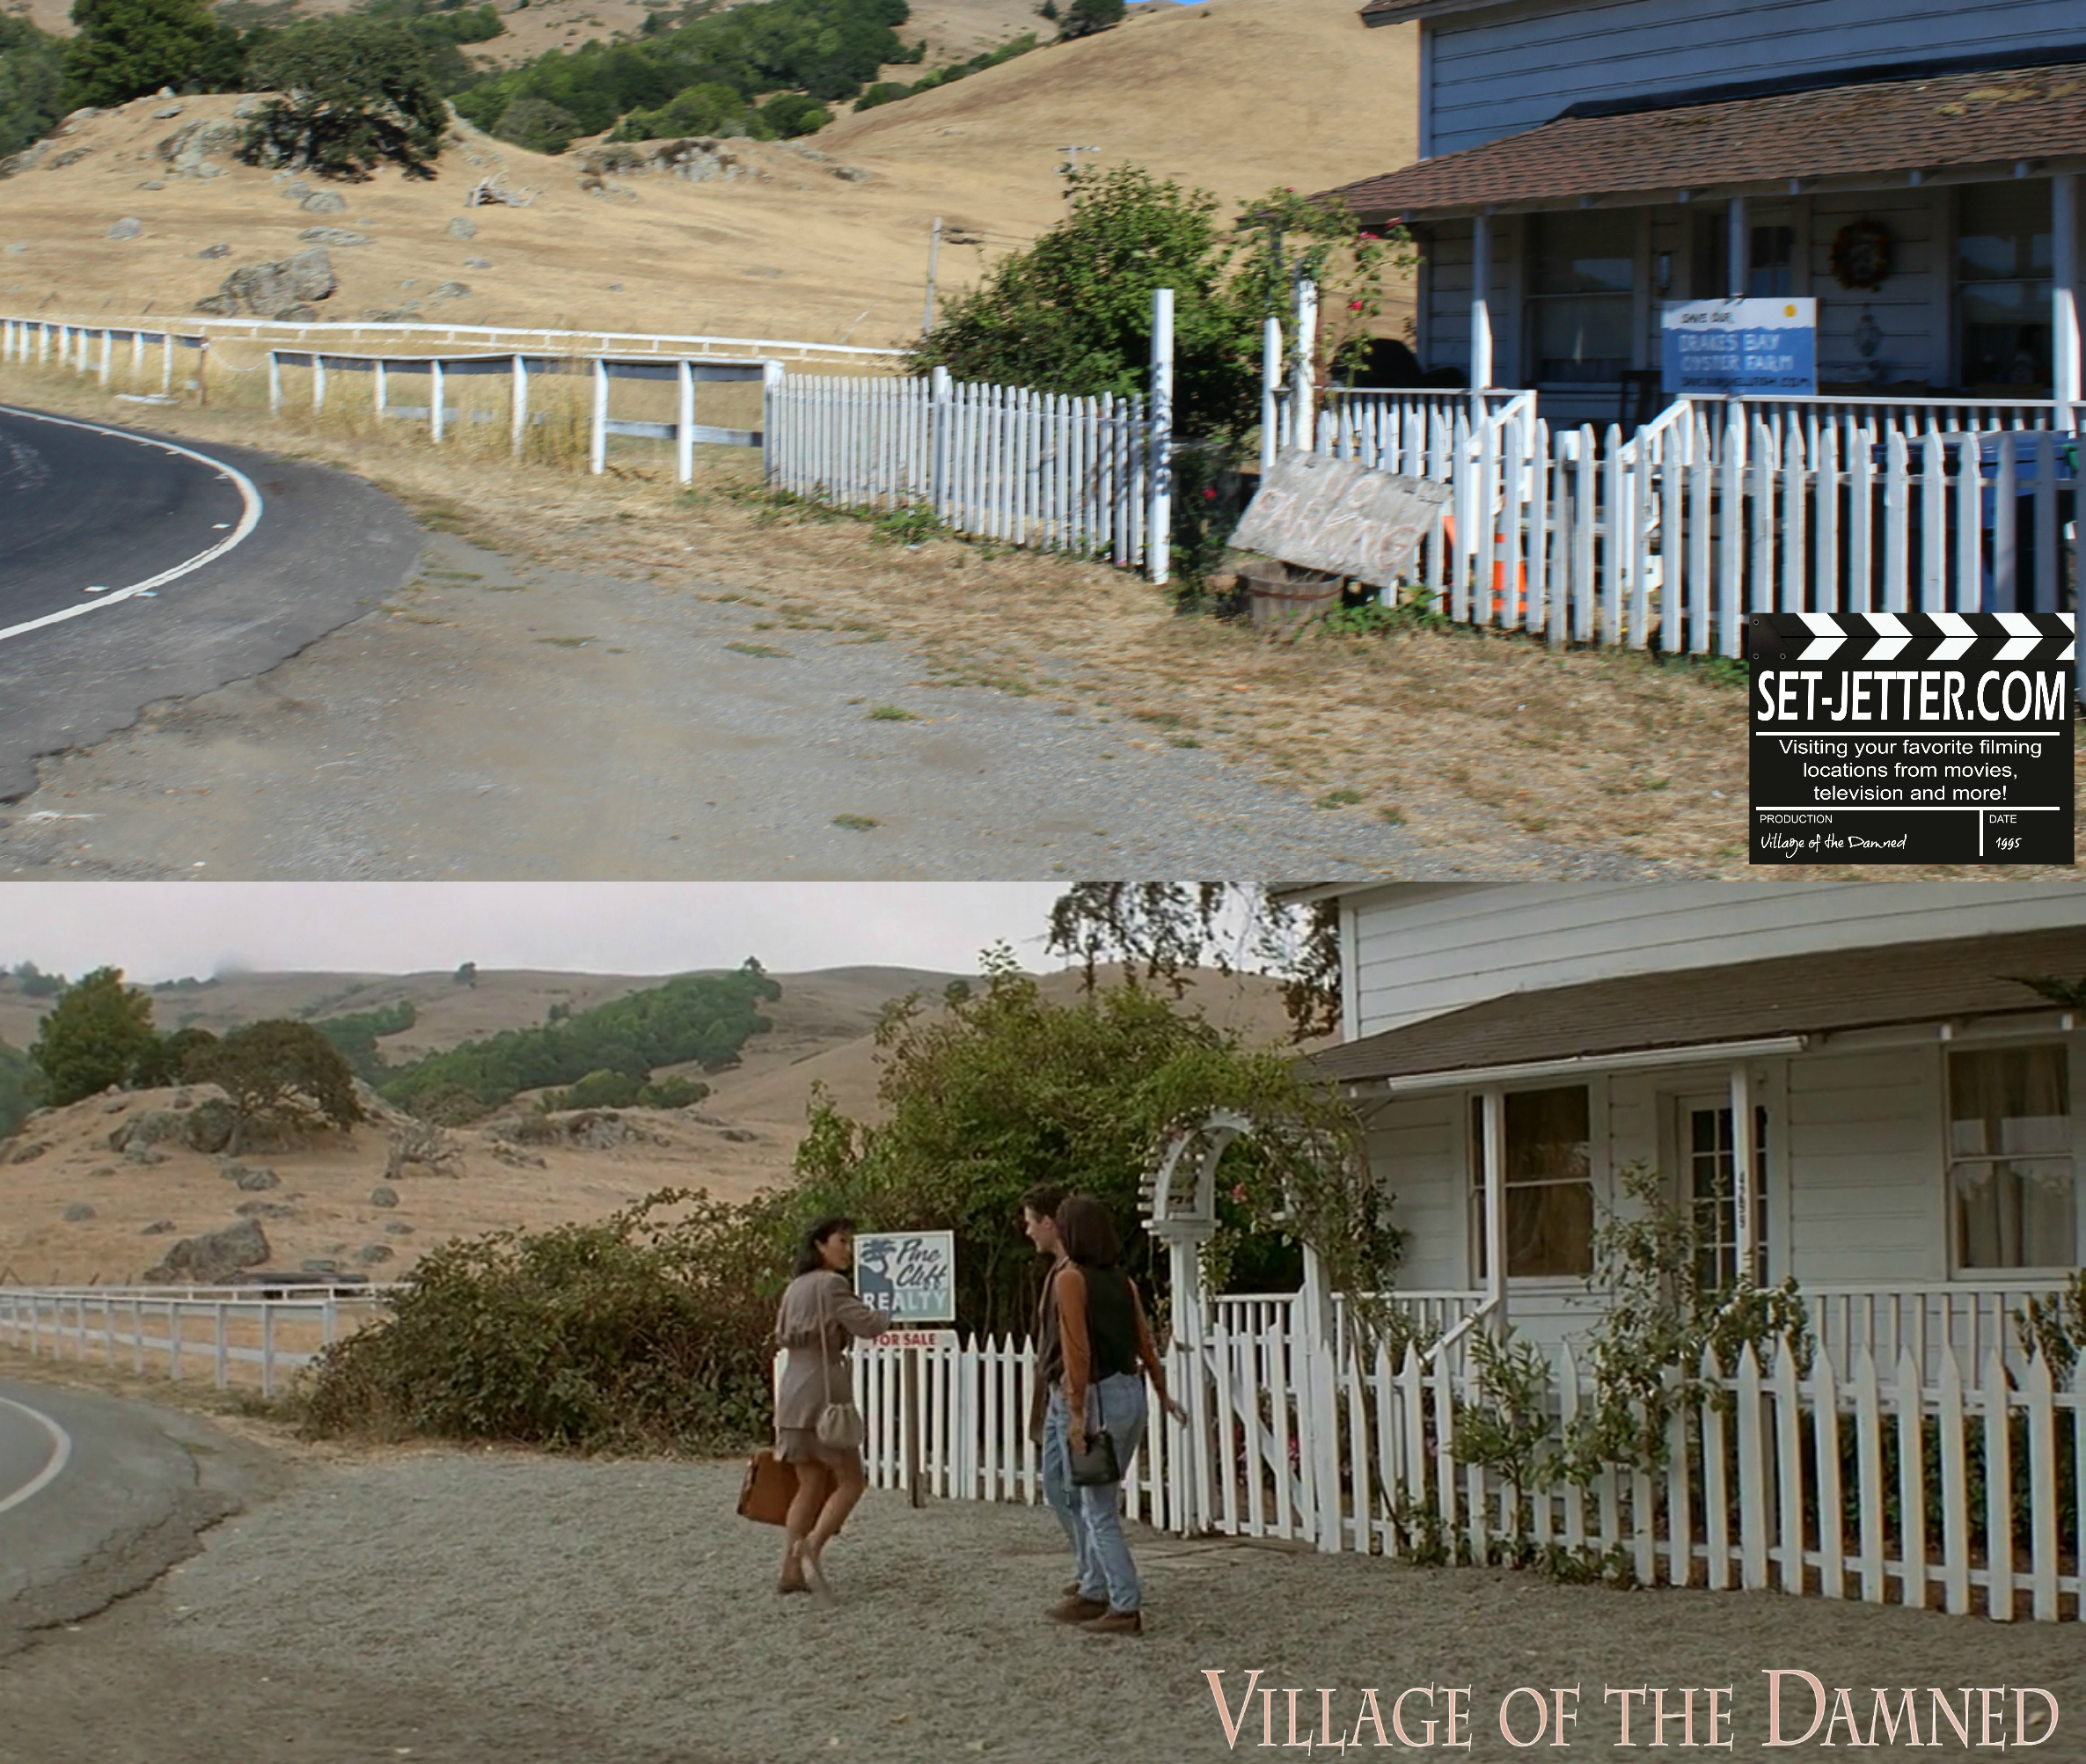 Village of the Damned comparison 44.jpg